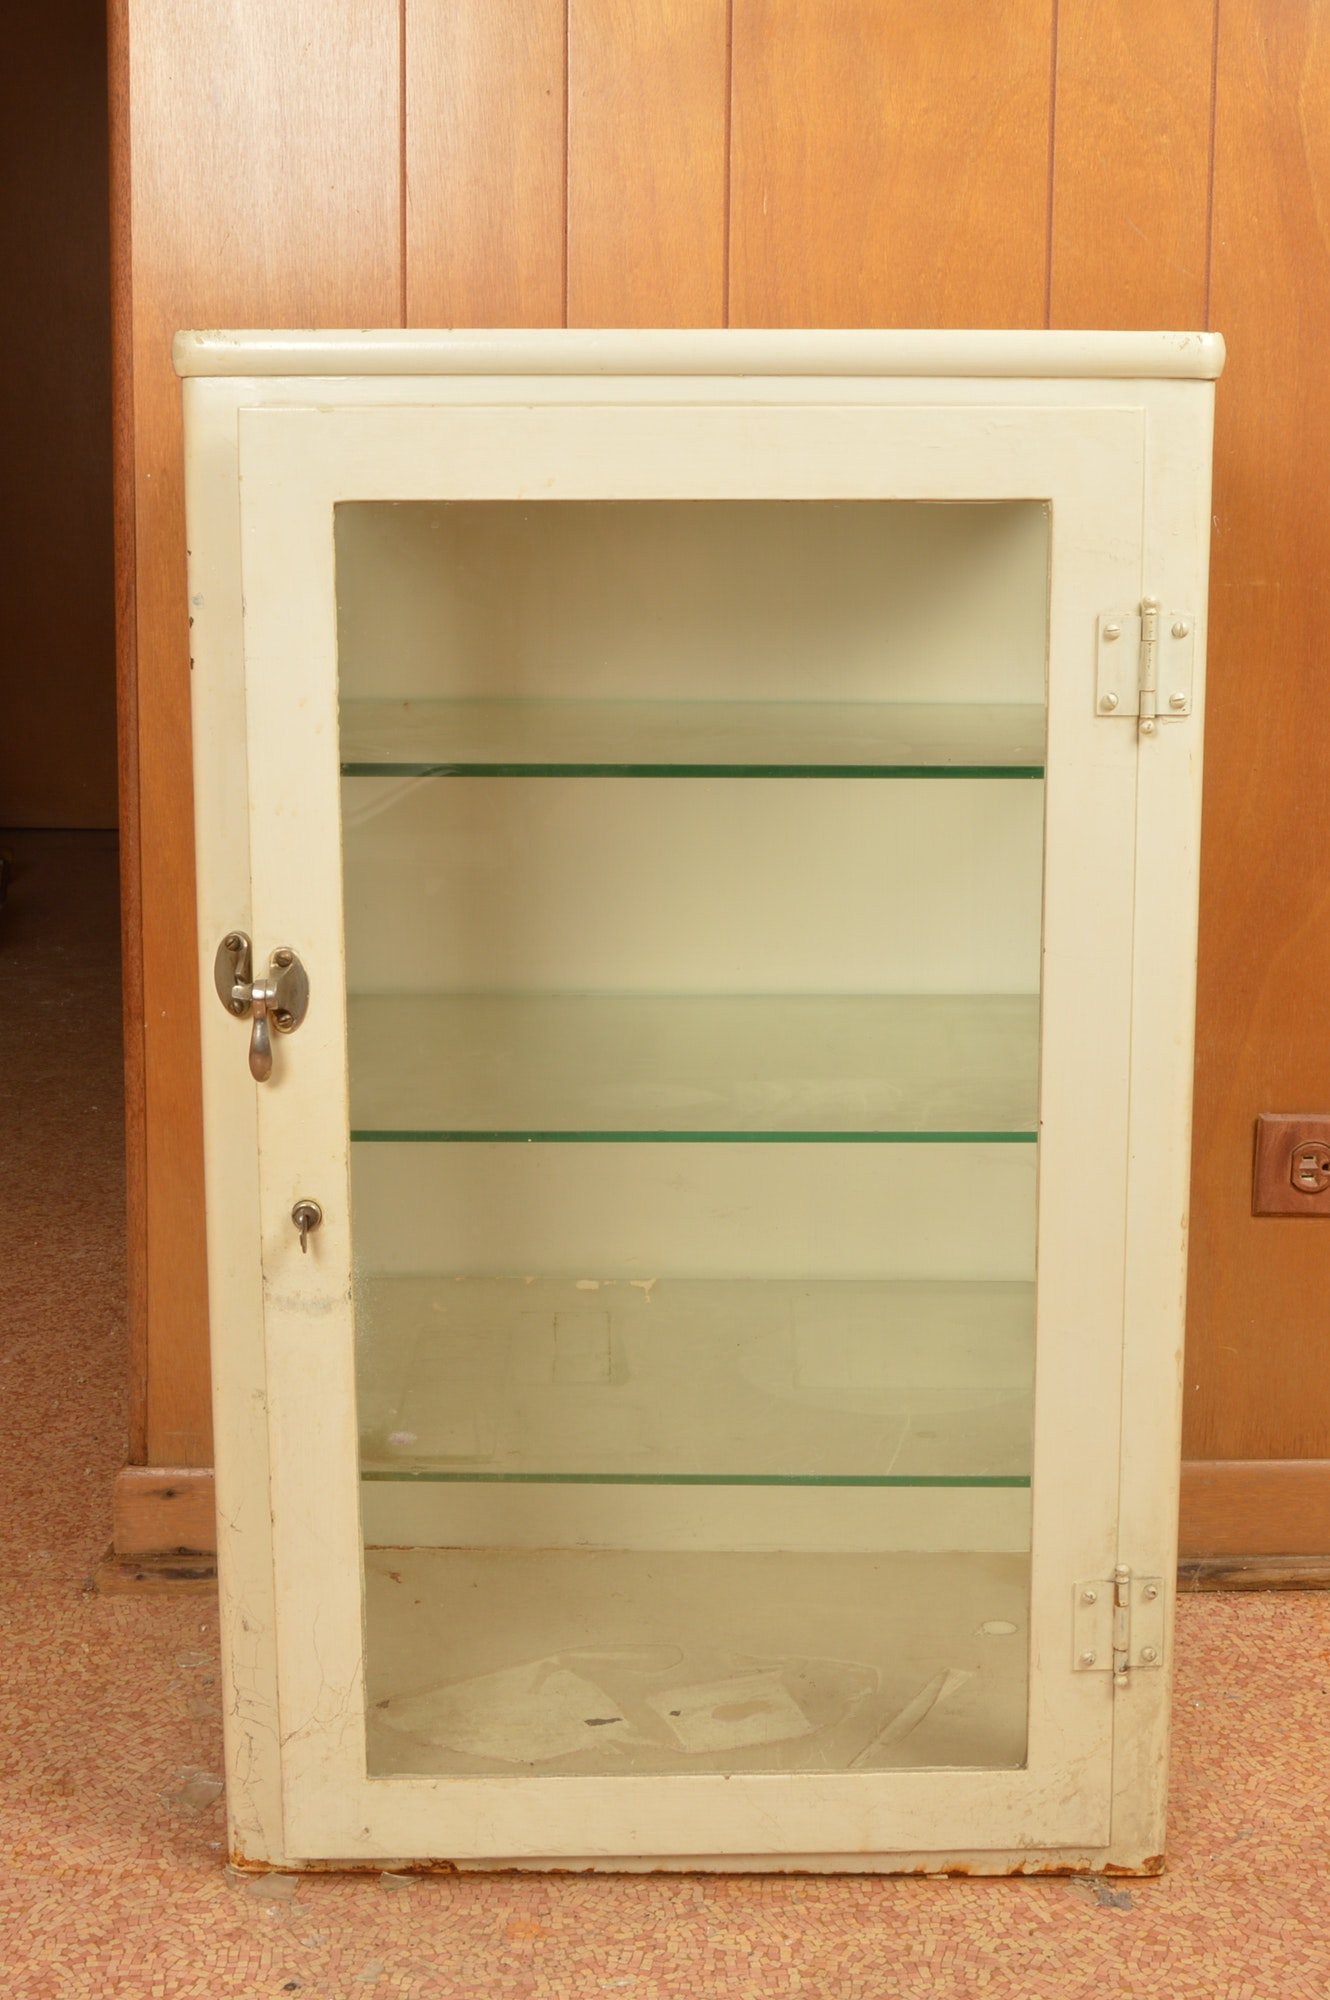 Off-White Wall Display Cabinet